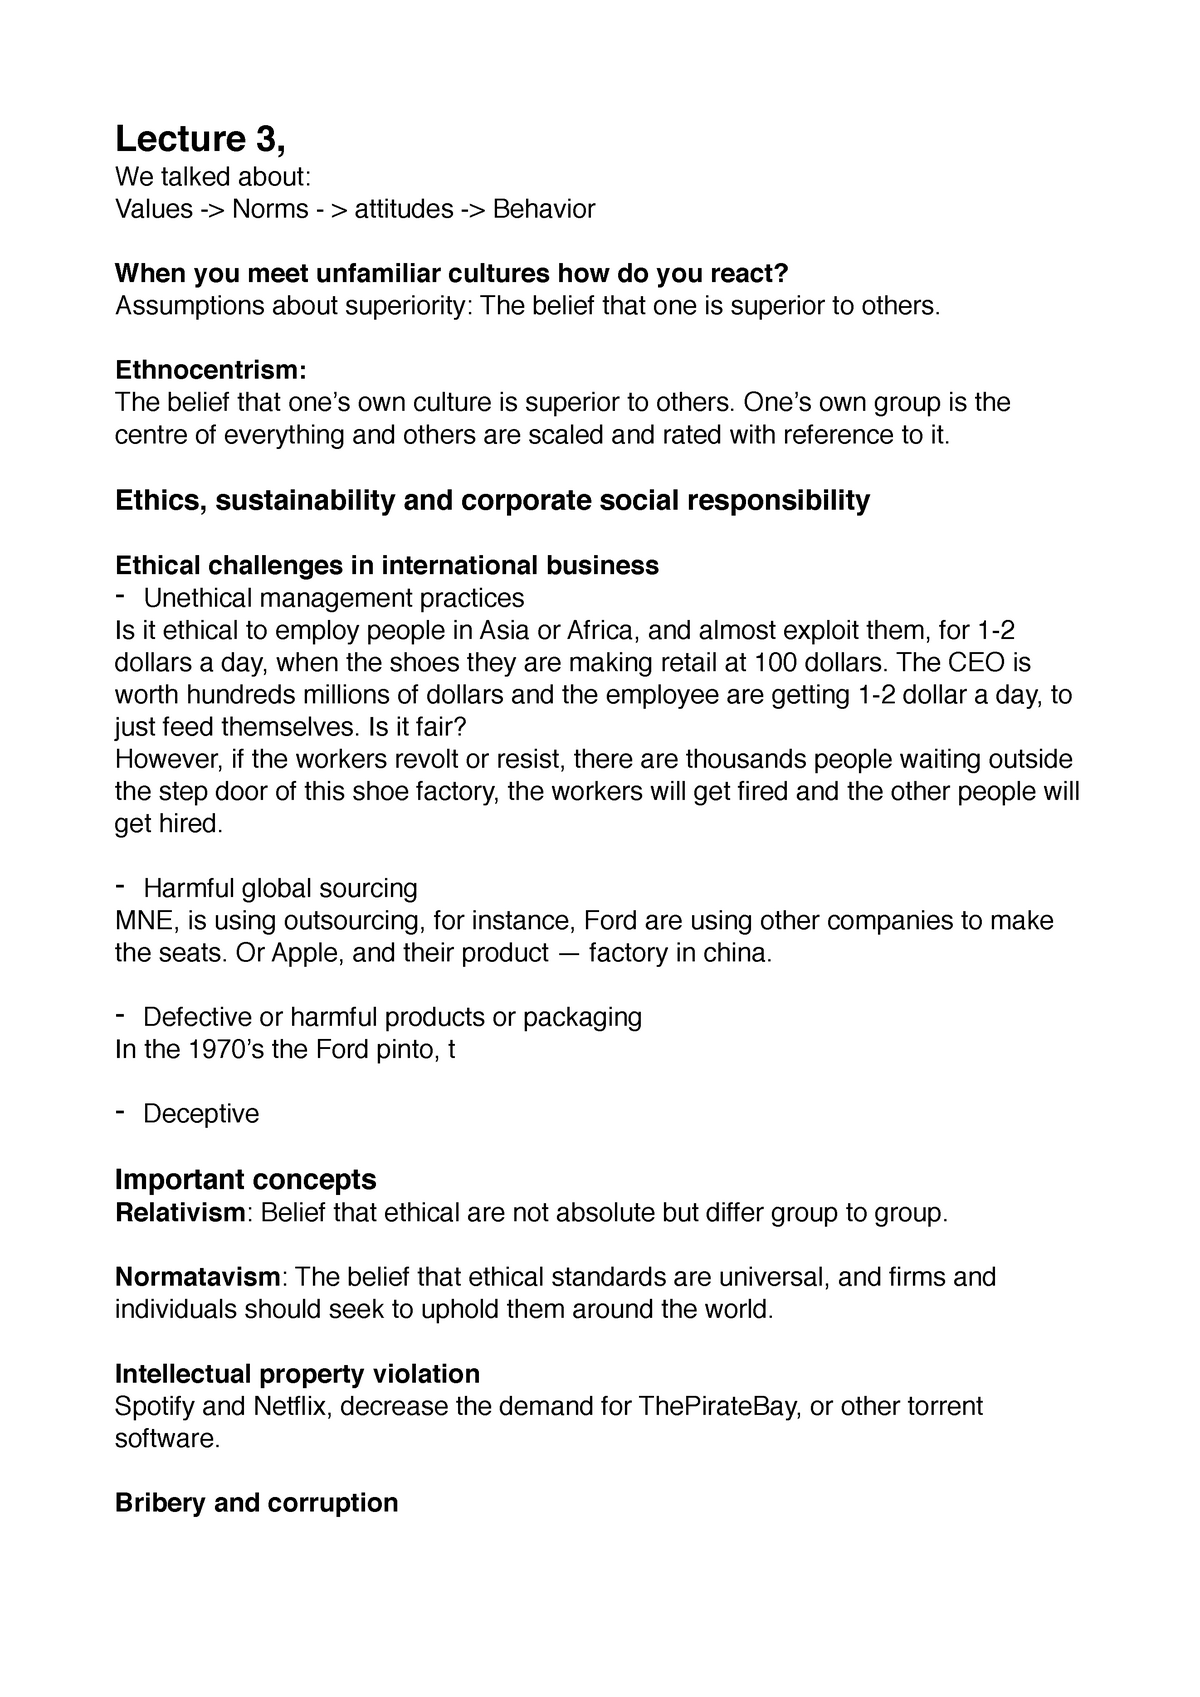 Lecture 3,Ethics, sustainability and corporate social